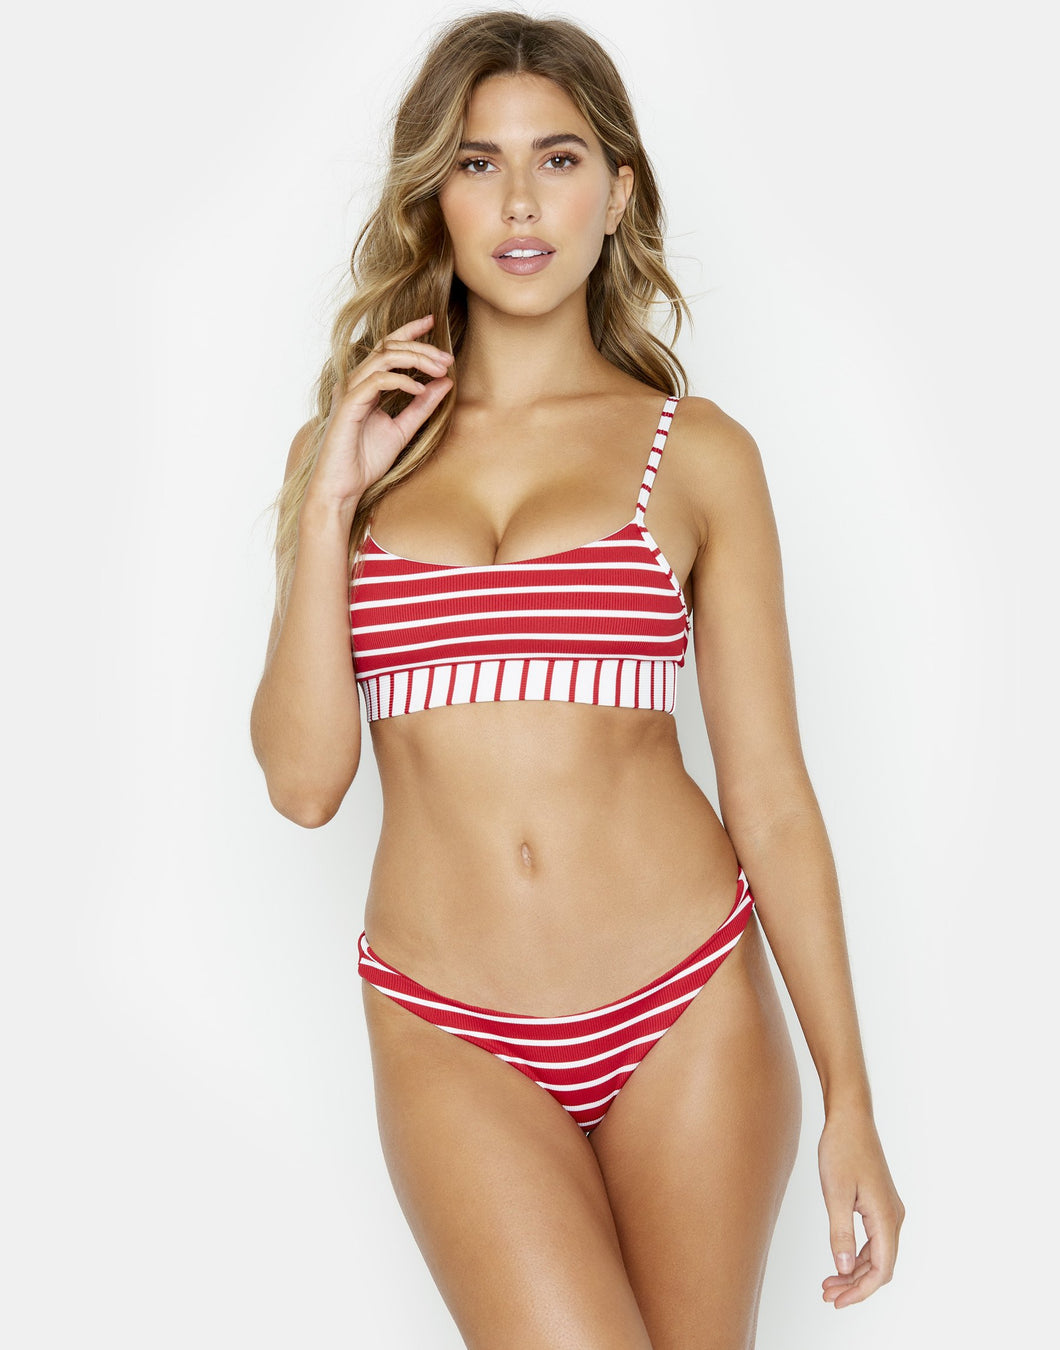 Beach Bunny Swimwear 'Emerson' Bralette Bikini Top in Red Stripe Rib